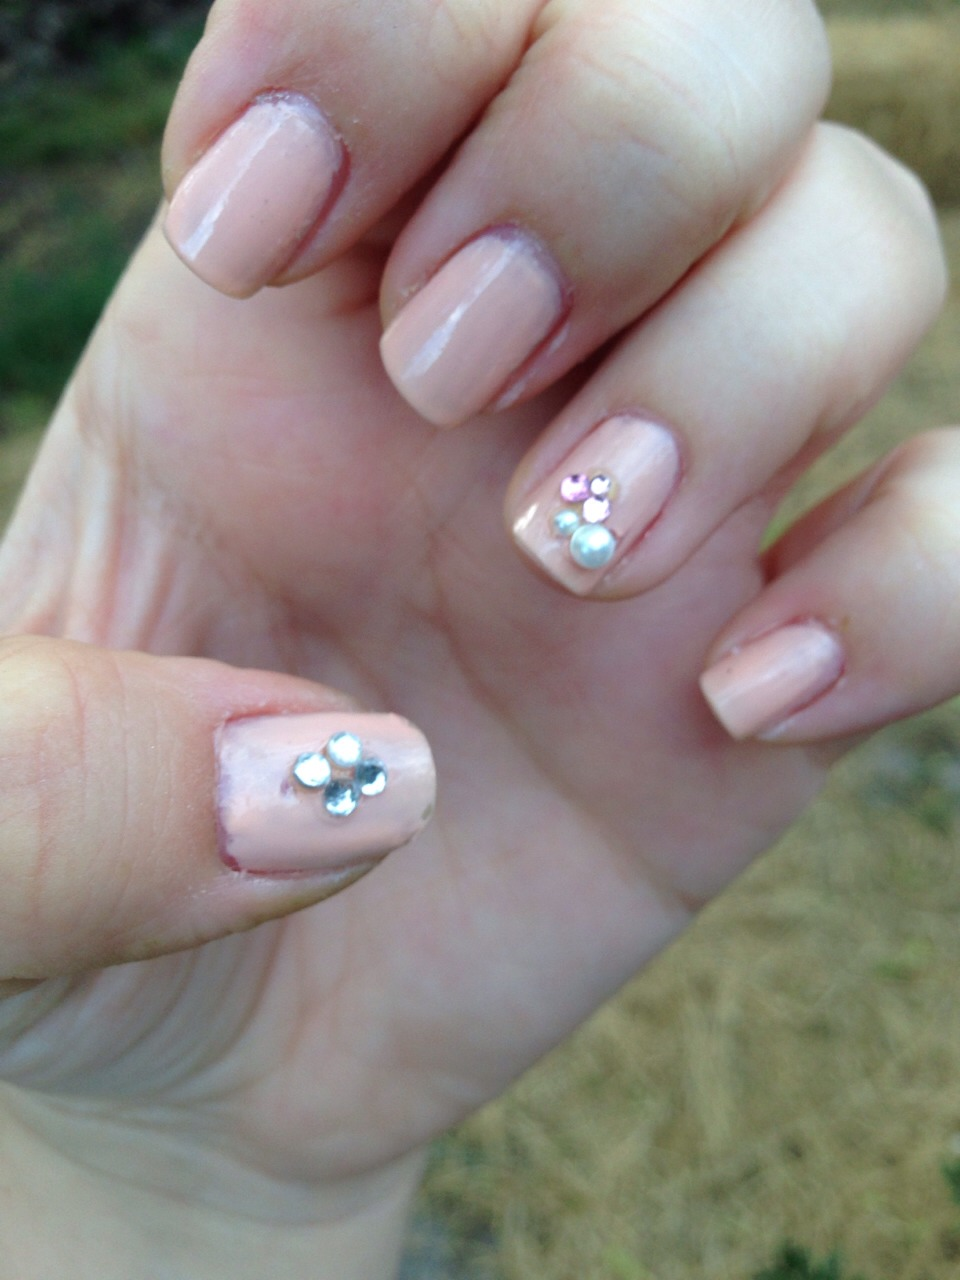 Steps:  1: Paint your nails any color you want and apply a top coat  2: Apply rhinestones and designs with a nail stick (you can buy cheap stick-on rhinestones at walmart)  3: Apply 2 layers of top coat over whole nail including over design  4: Let nails dry 5: Enjoy your almost no cost nails!